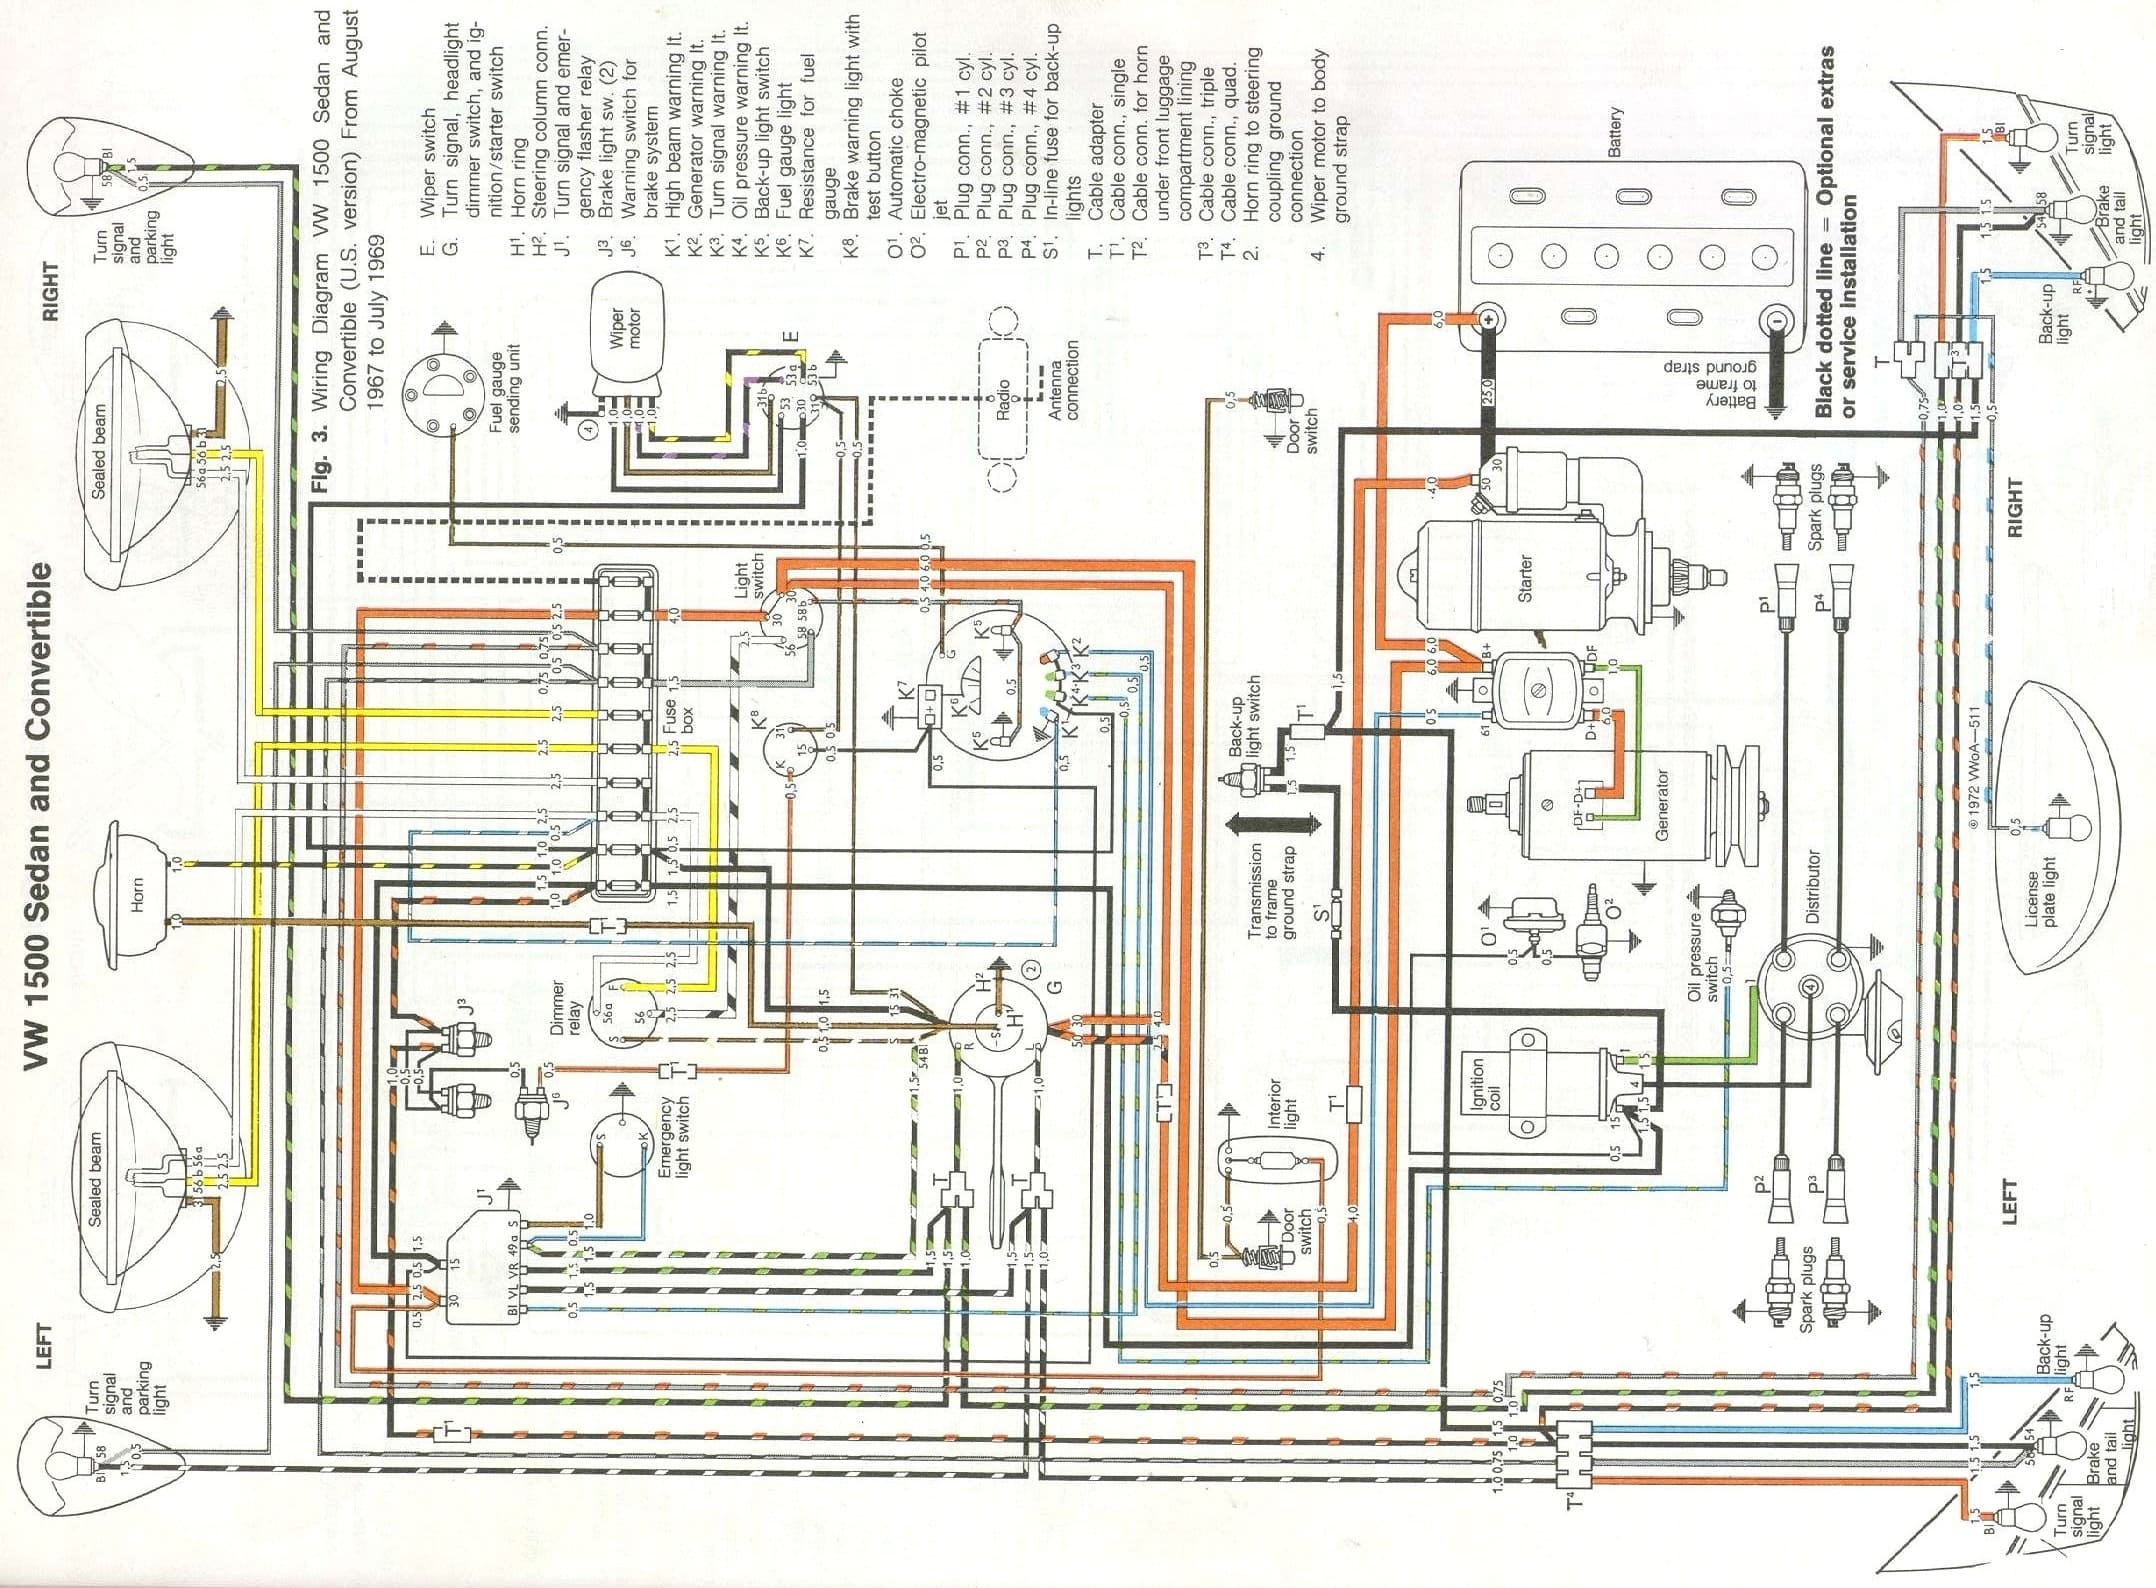 motor wiring diagram u v w boat battery vw restoration maintenance